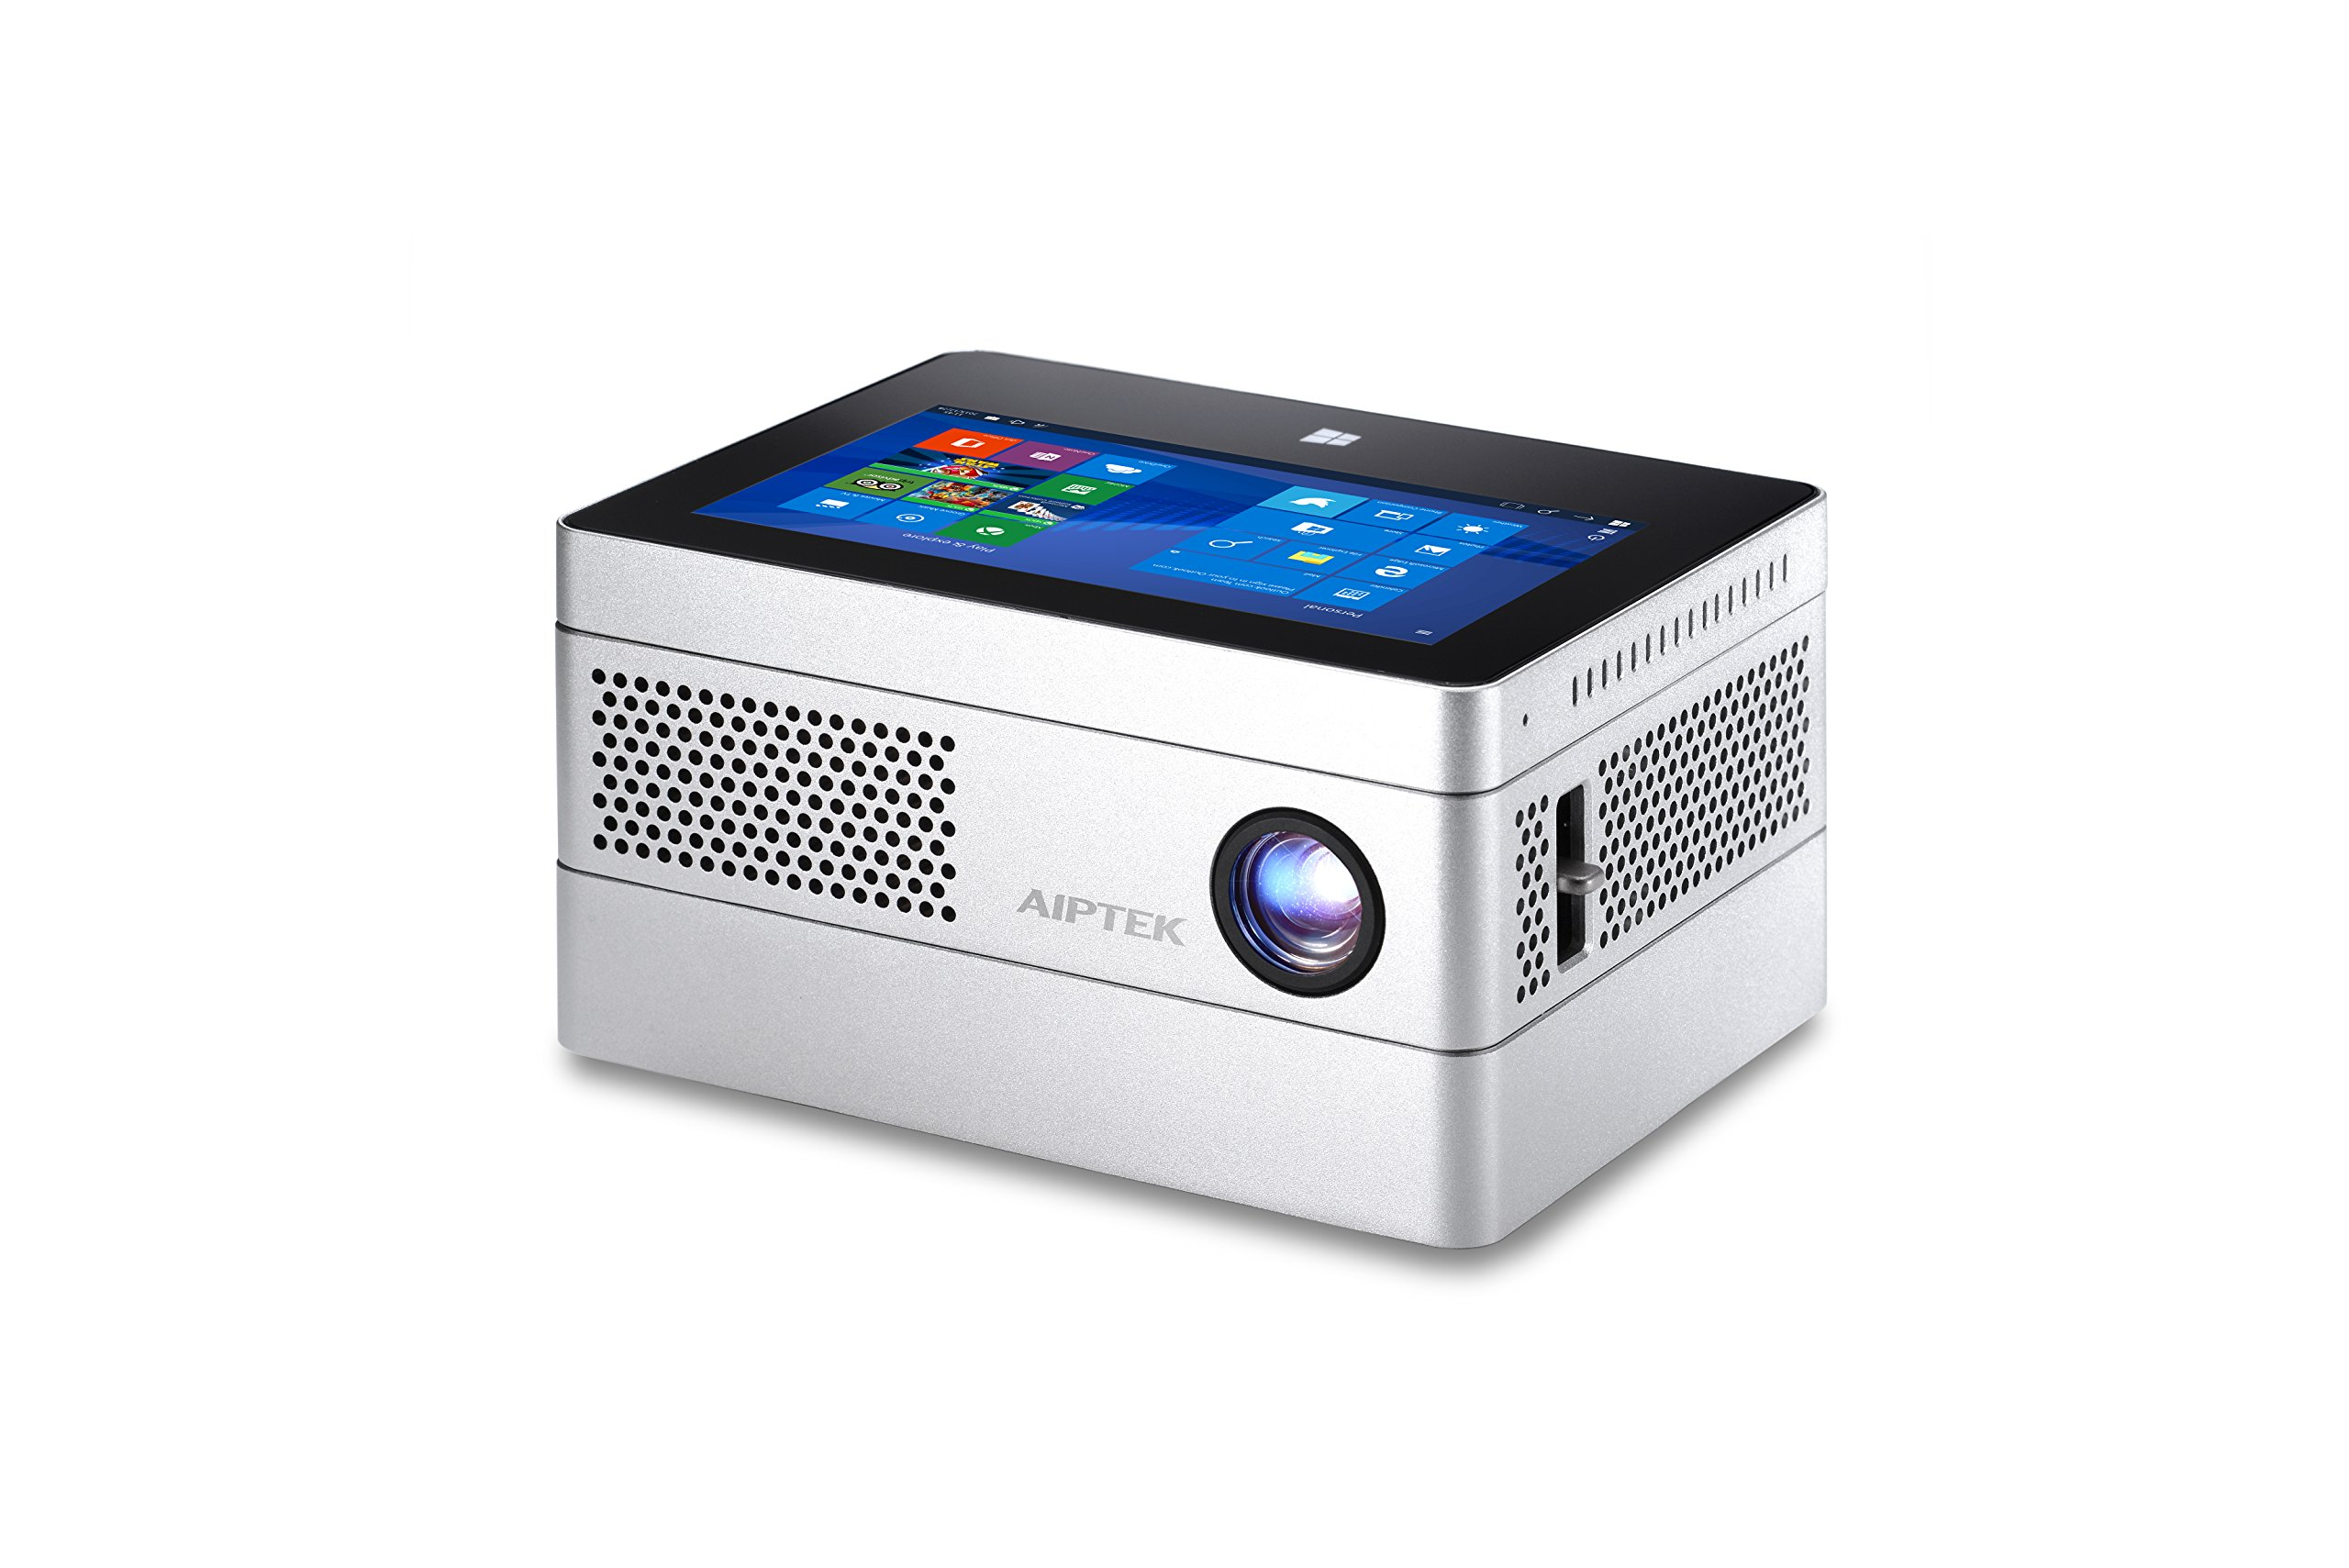 AIPTEK iBeamBLOCK world's first modular computing projection system, HD projector with Win 10 tablet - iF Design Award 2017 Winner